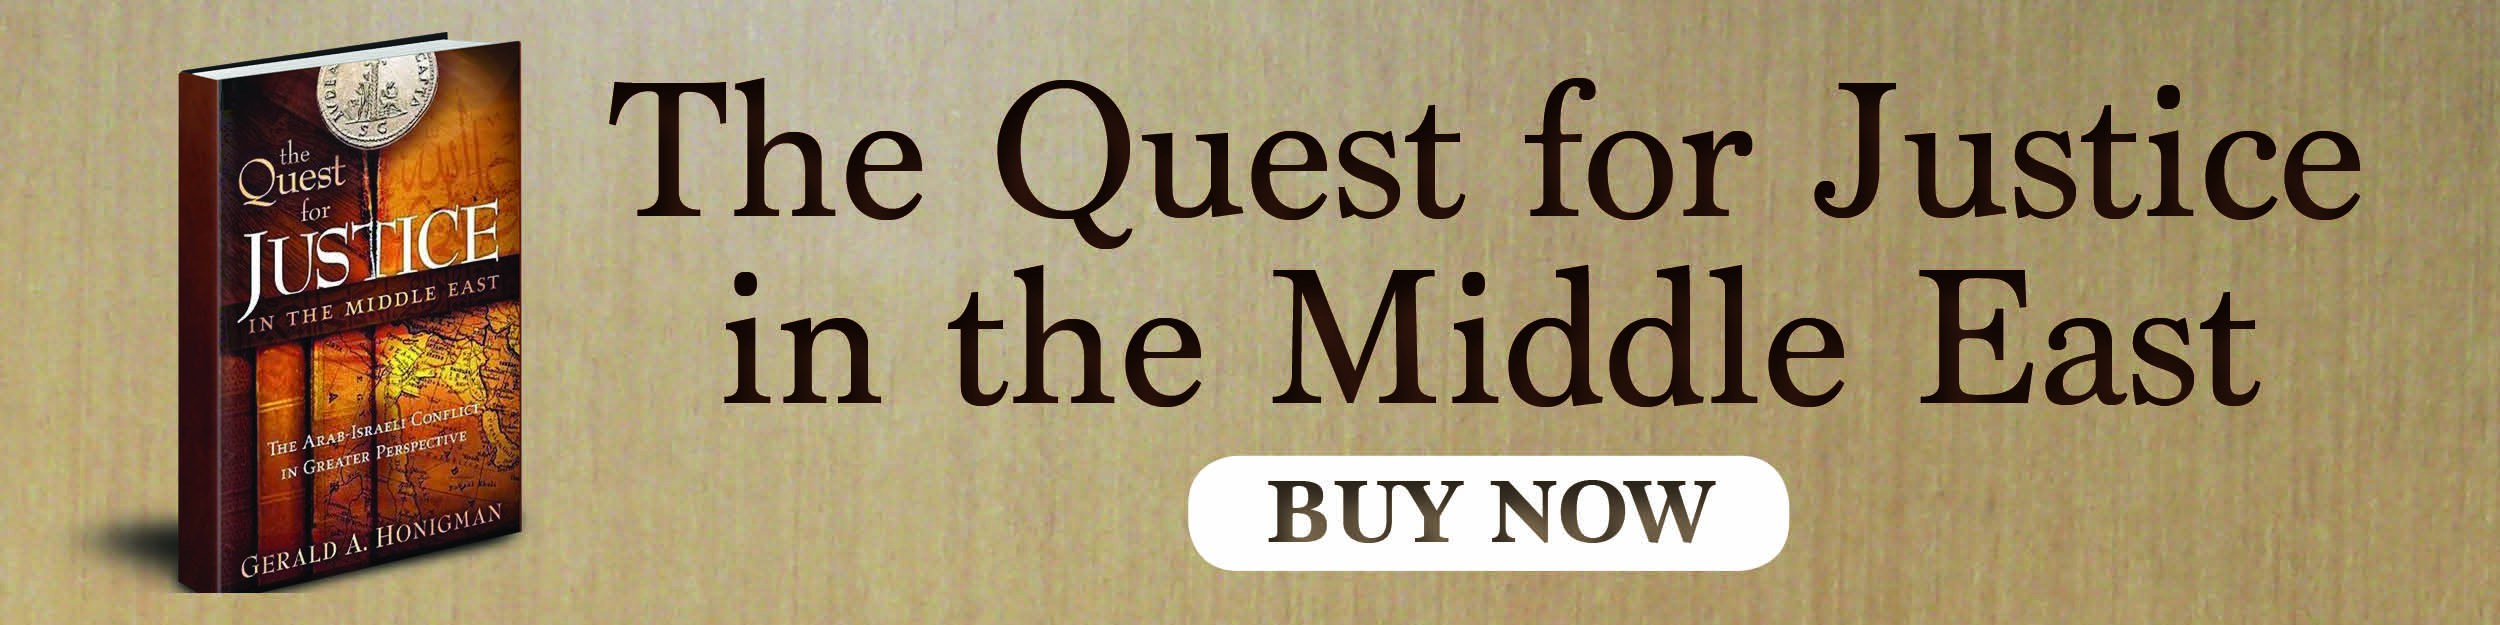 The quest for justice in the middle east. Buy now!